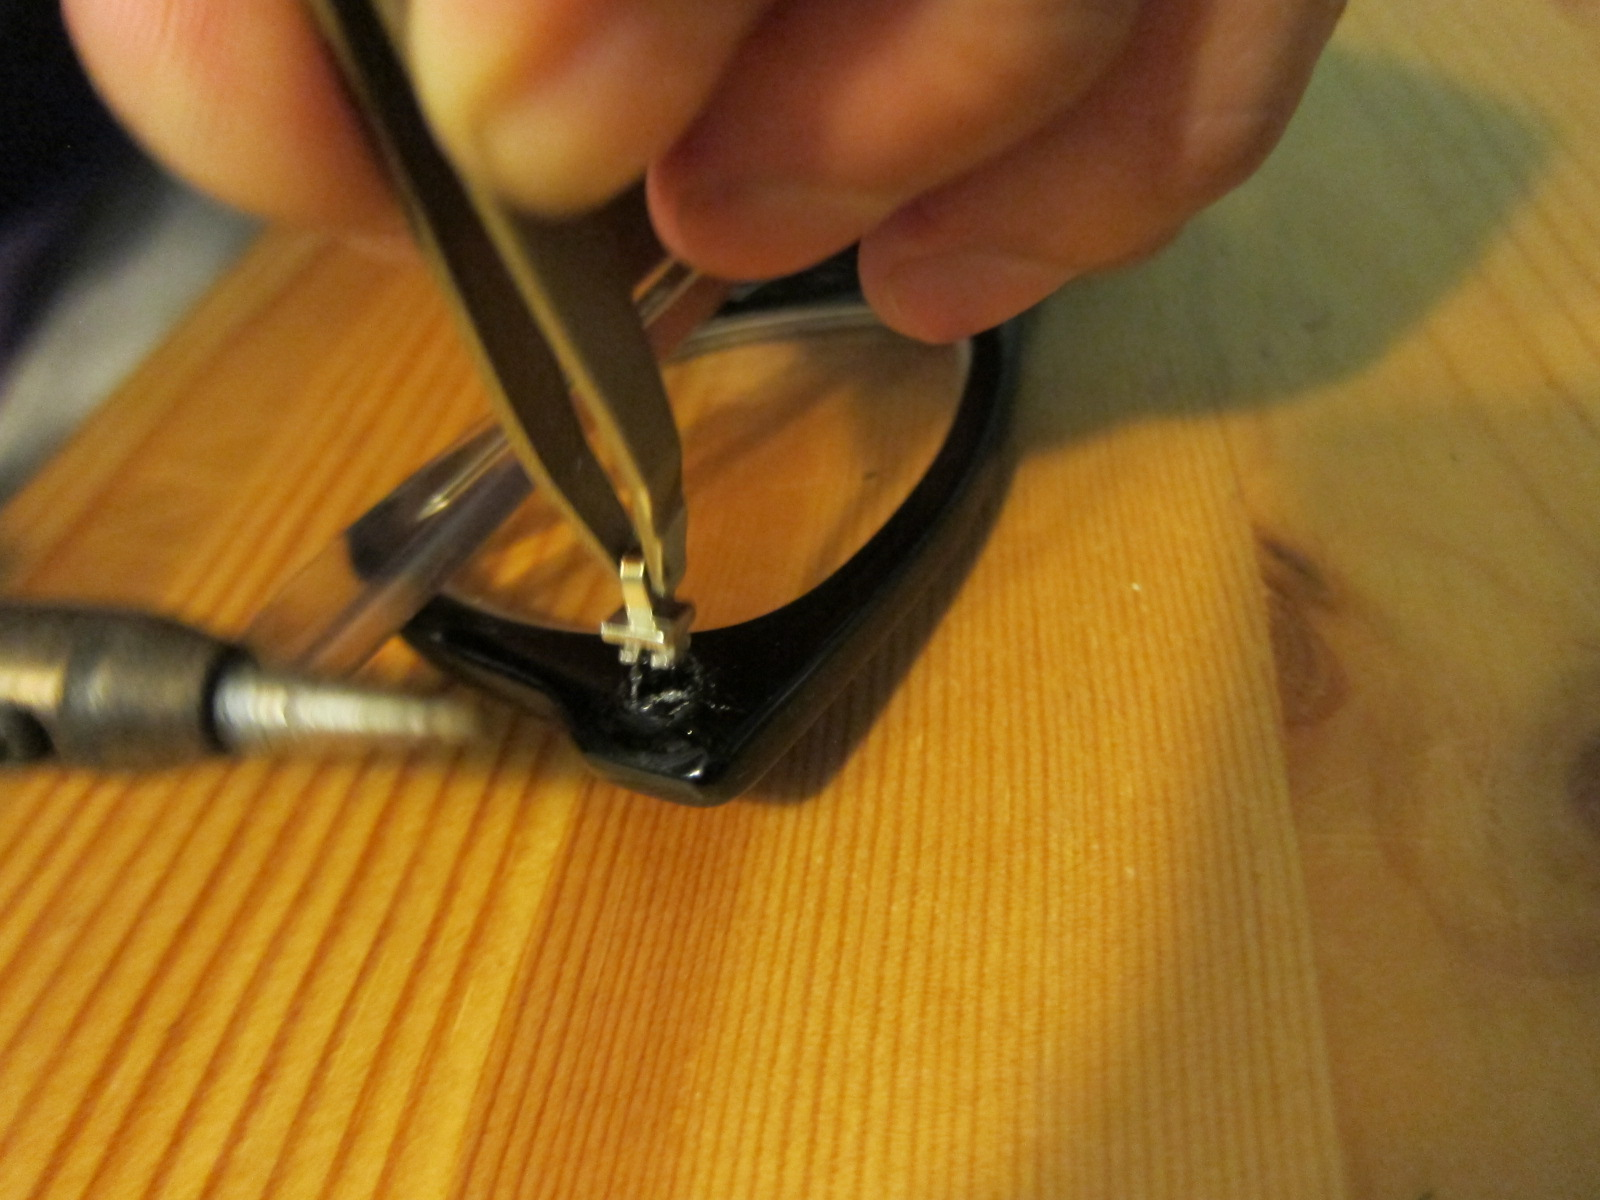 inserting the replacement hinge